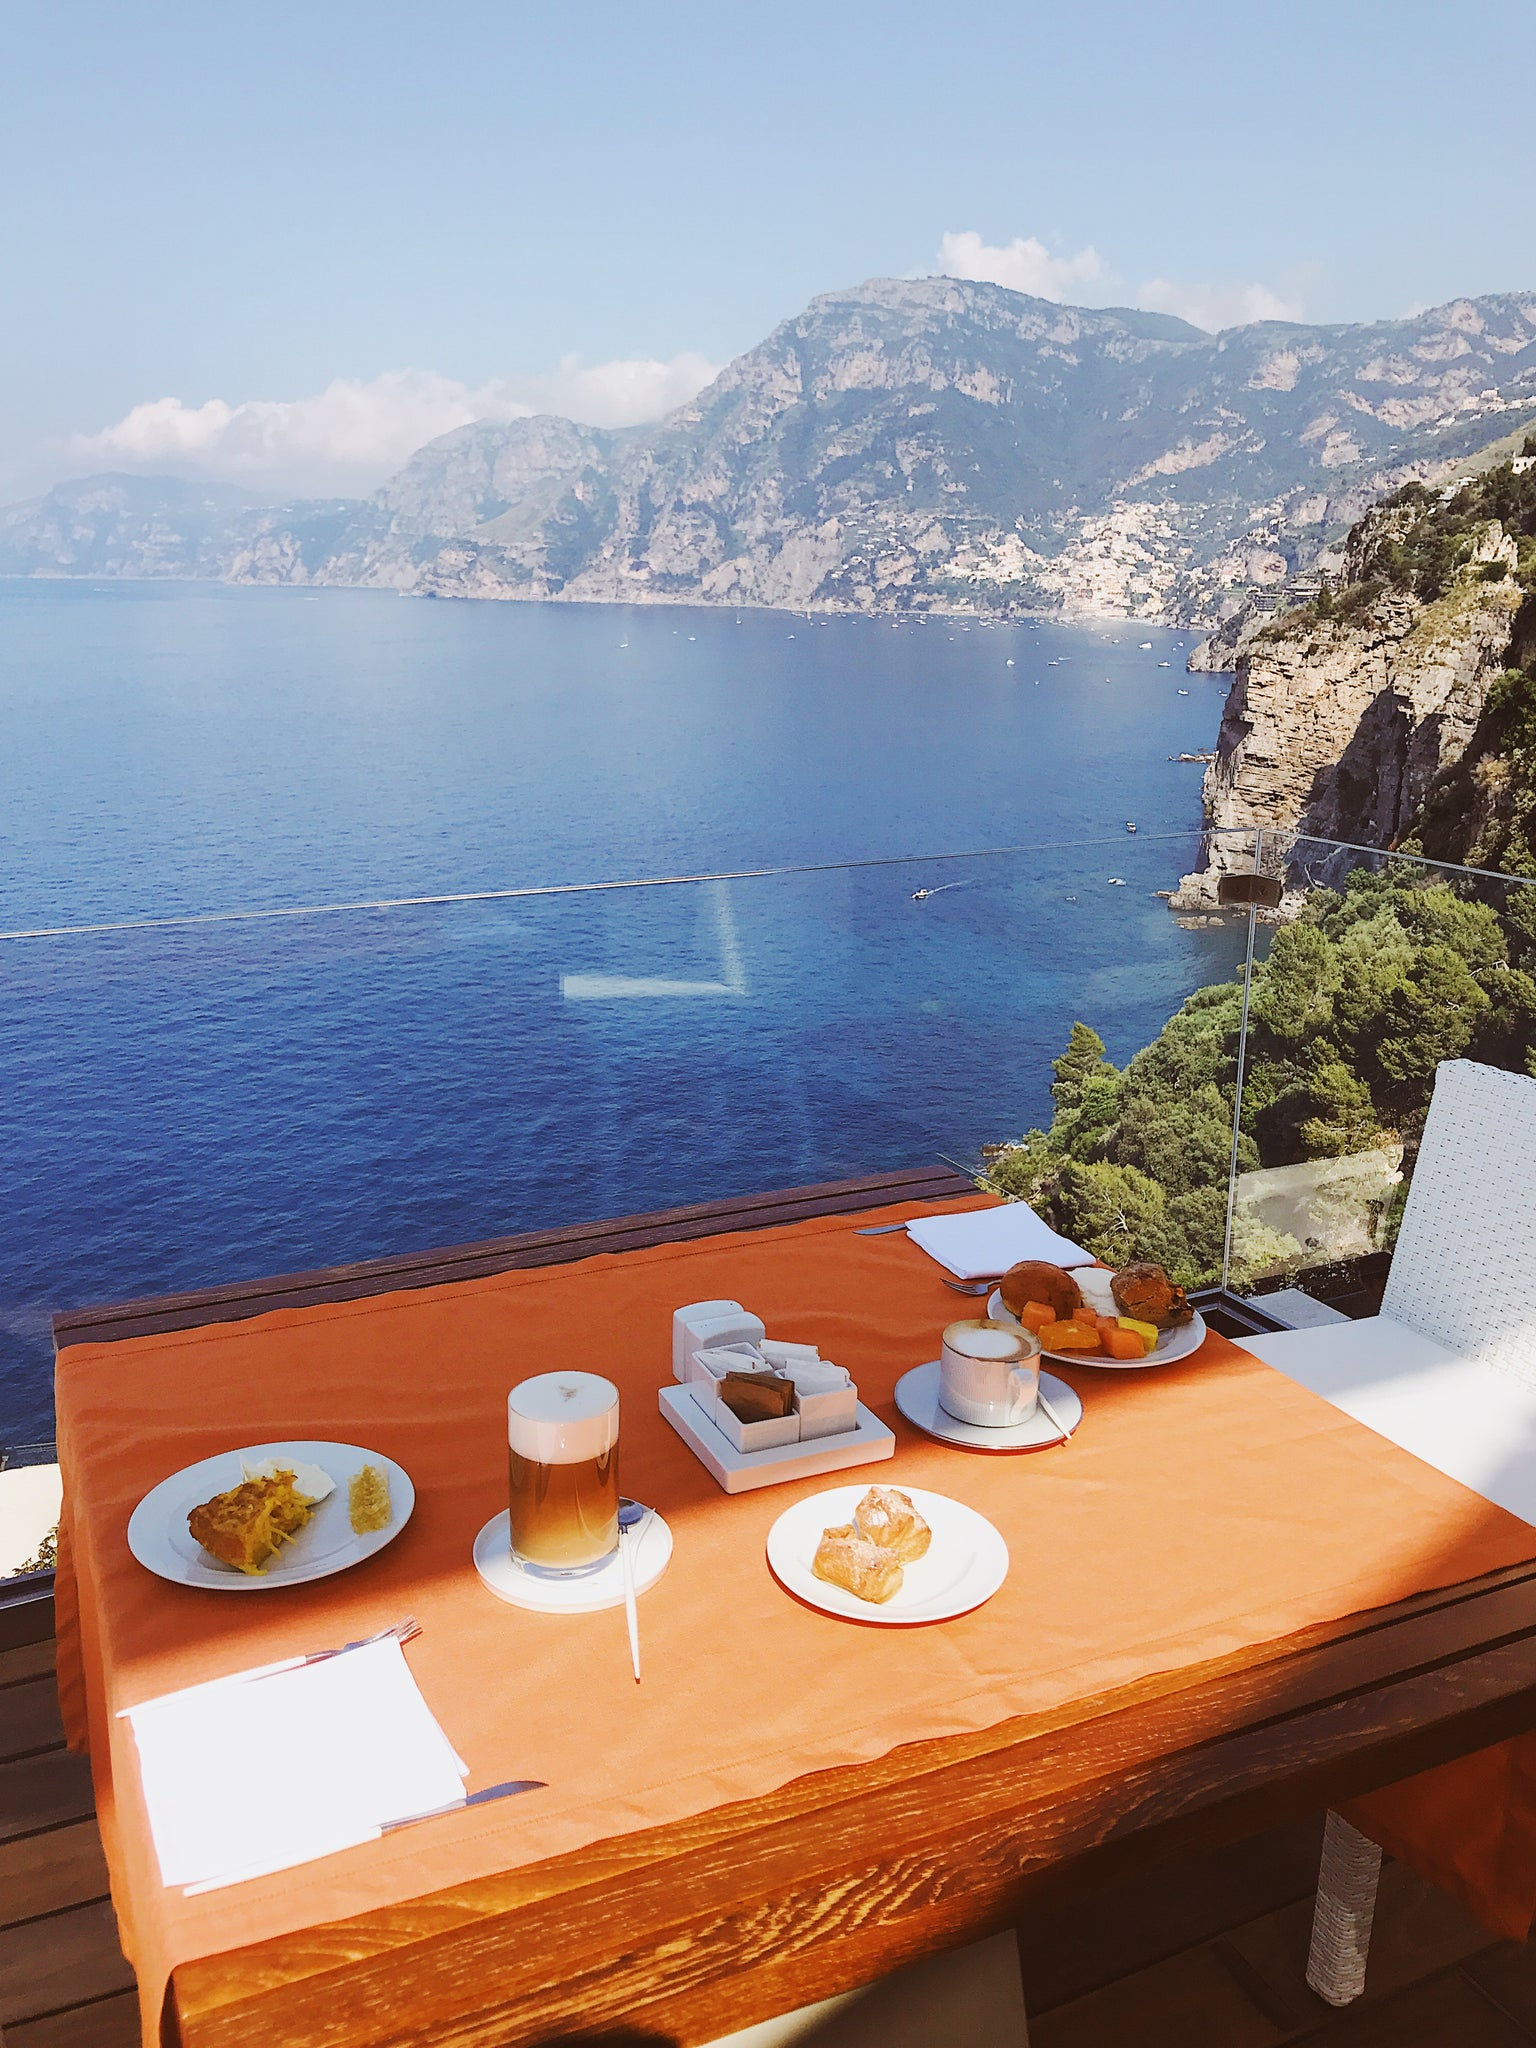 Casa Angelina breakfast view, Amalfi Coast, Praiano, Italy